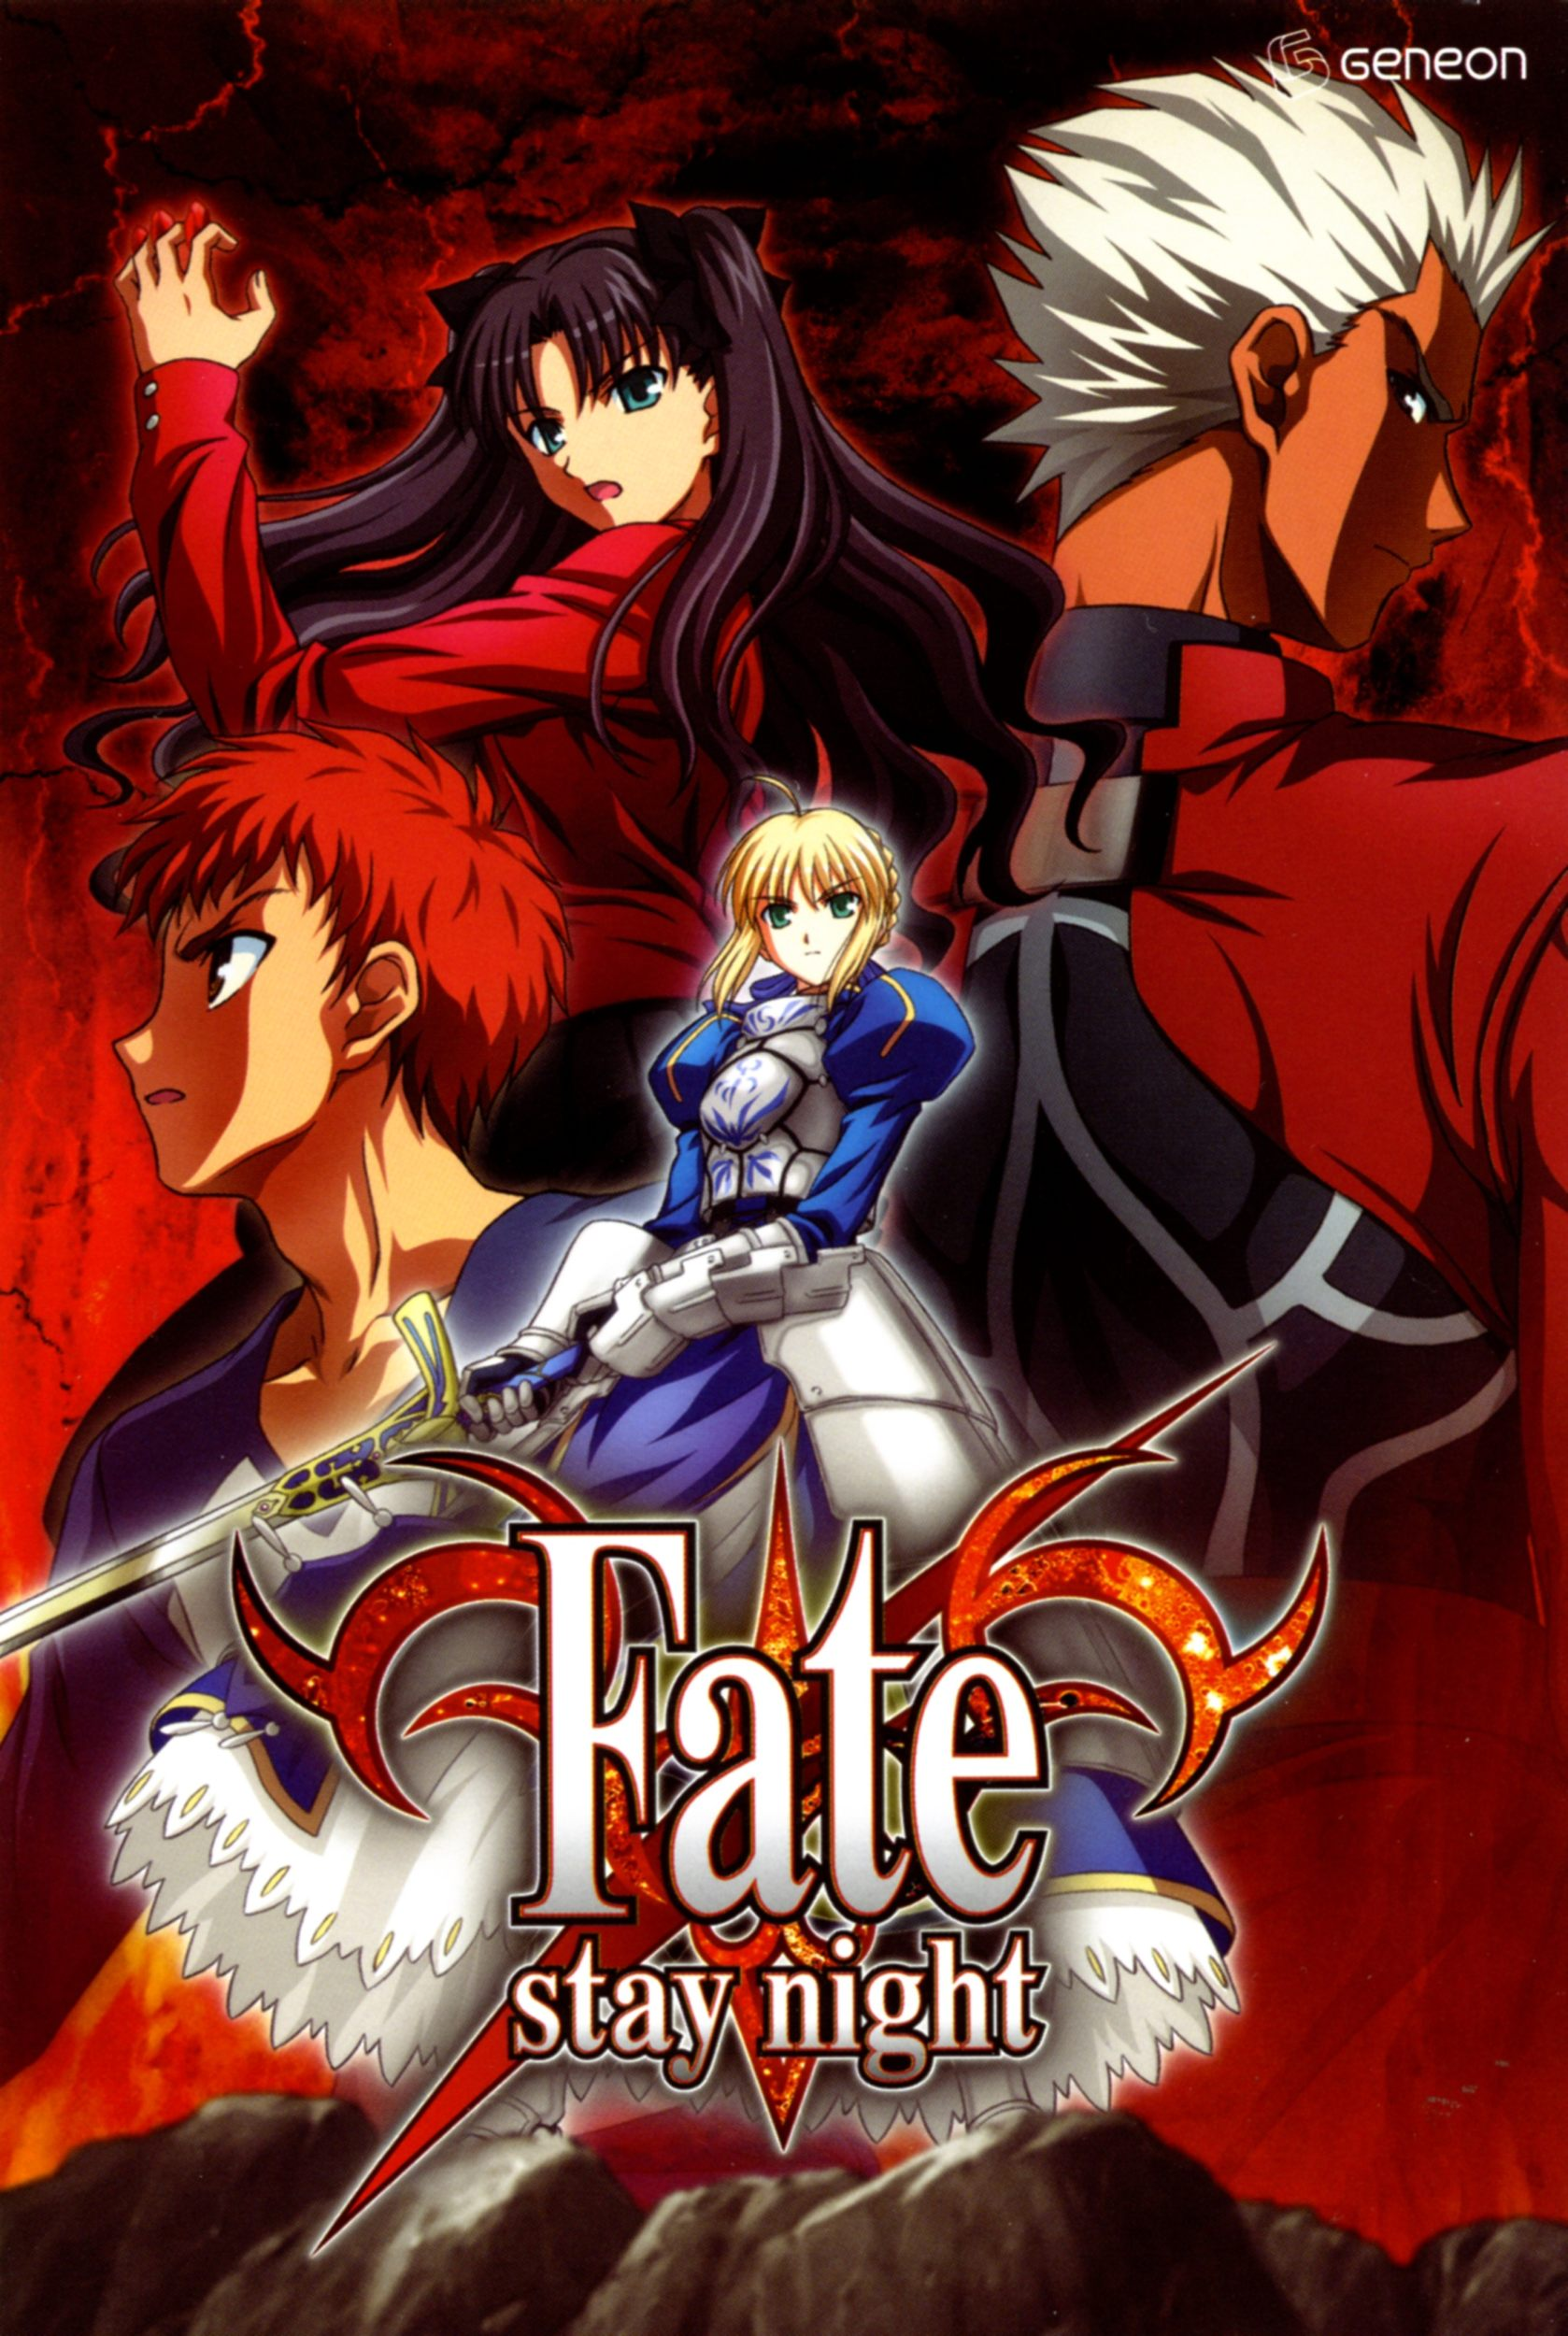 Fate/stay night (2006) - recenzja anima - rascal.pl